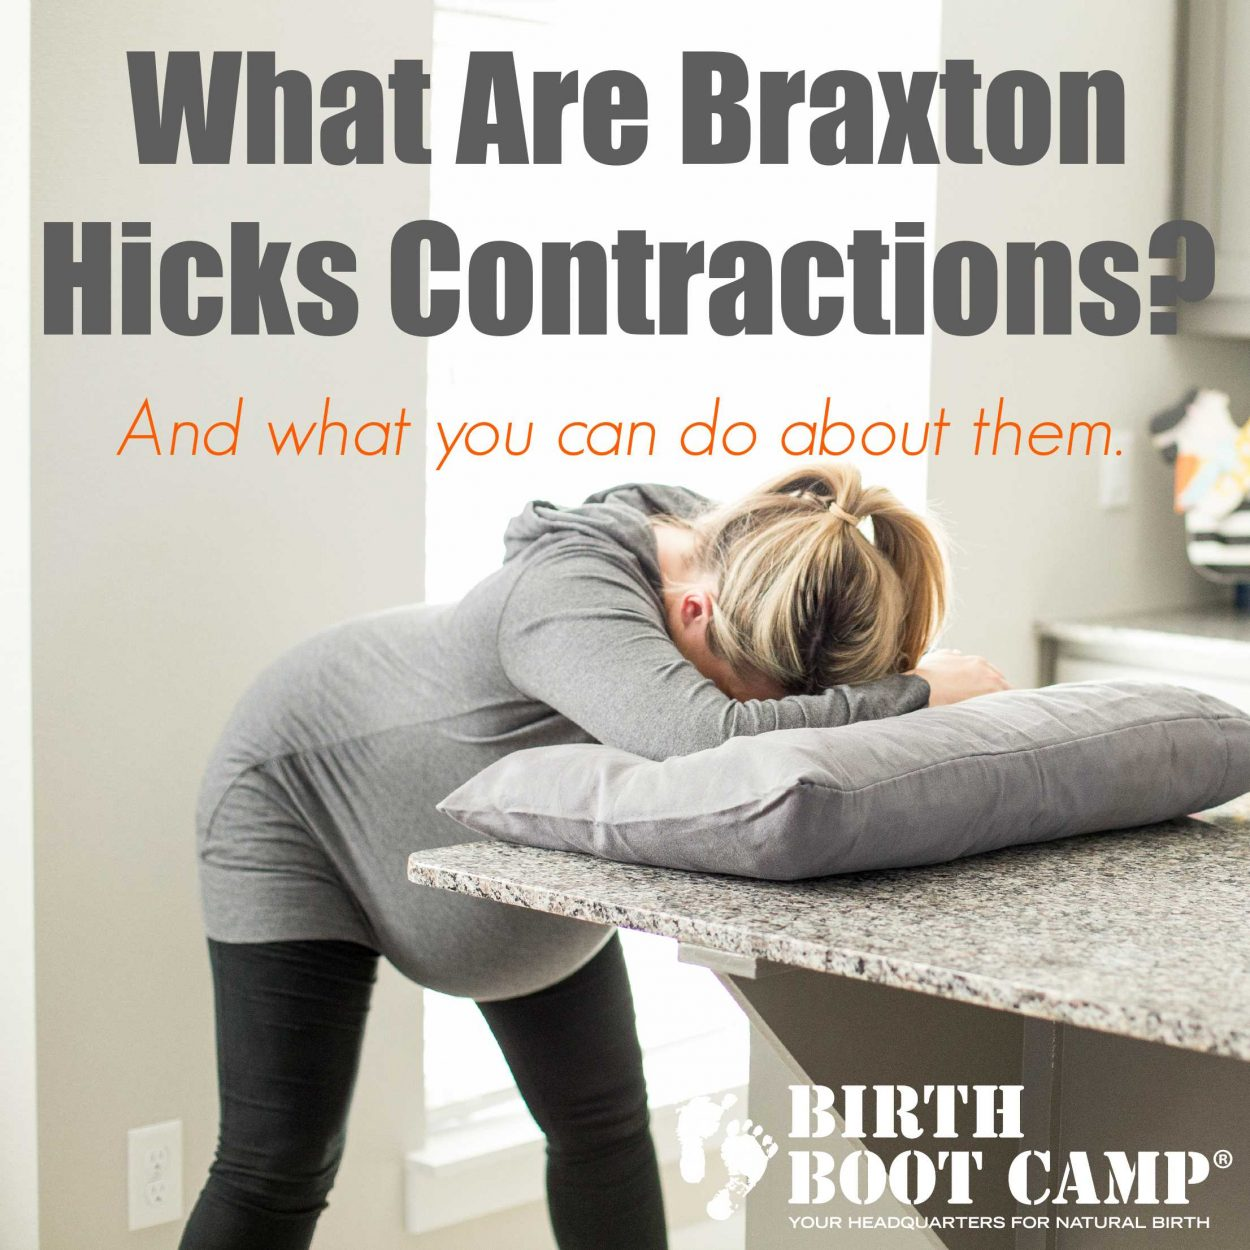 What Are Braxton Hicks Contractions